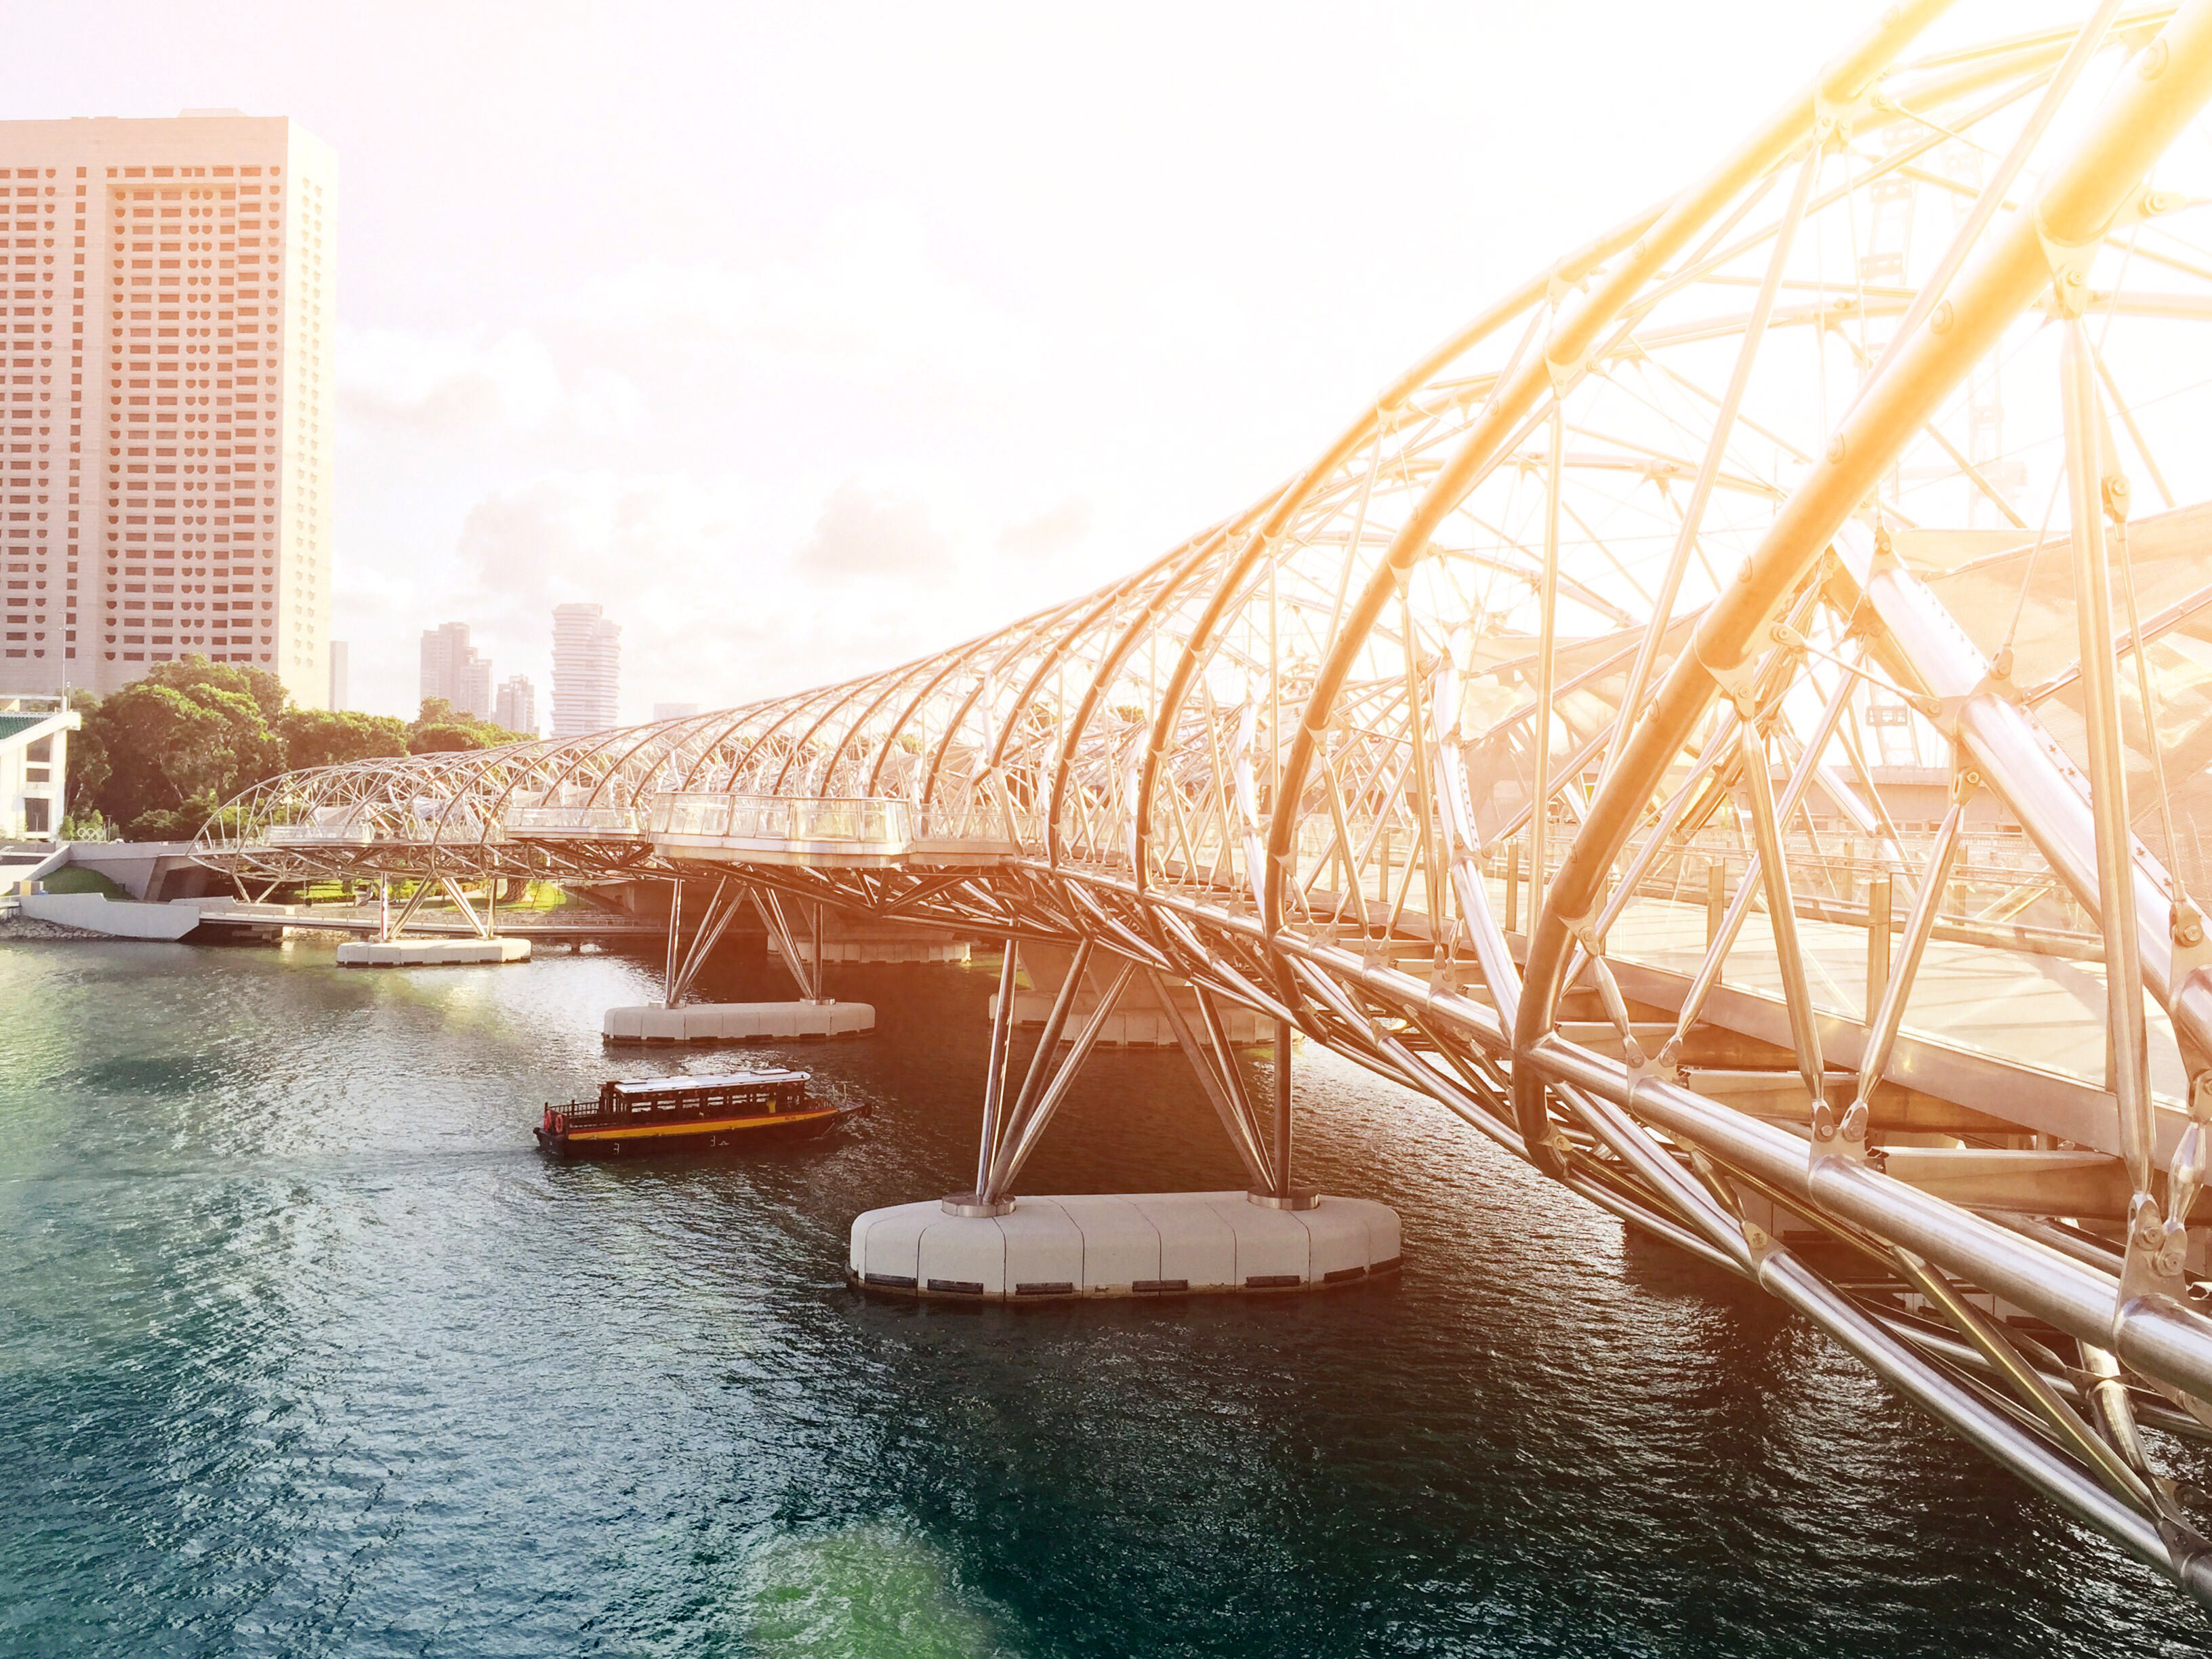 Bridge architecture in singapore under the sunlight image Domaine architecture